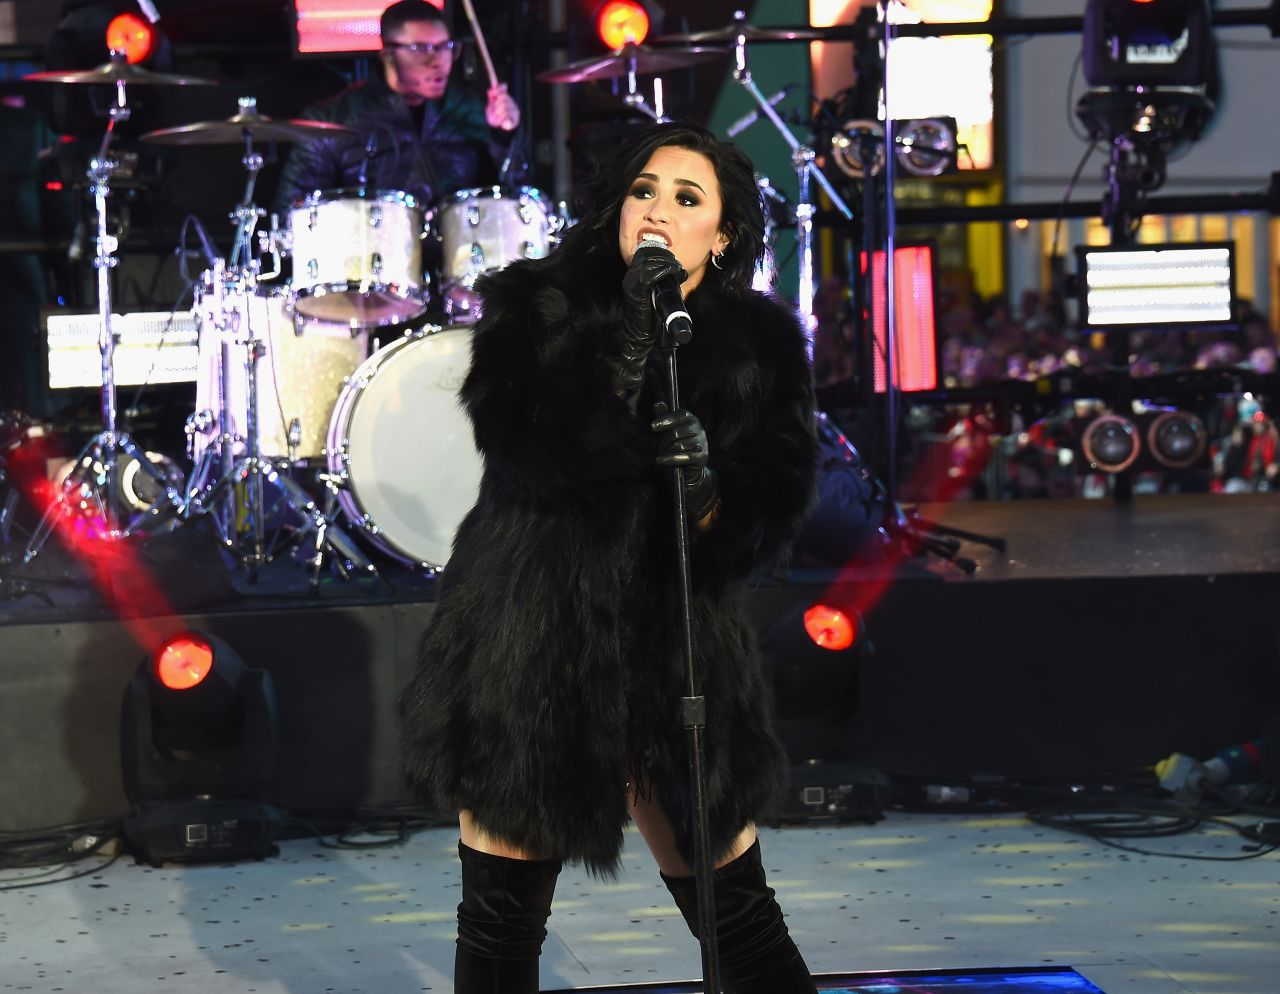 demi-lovato-performing-in-times-square-ny-new-year-s-rockin-eve-7